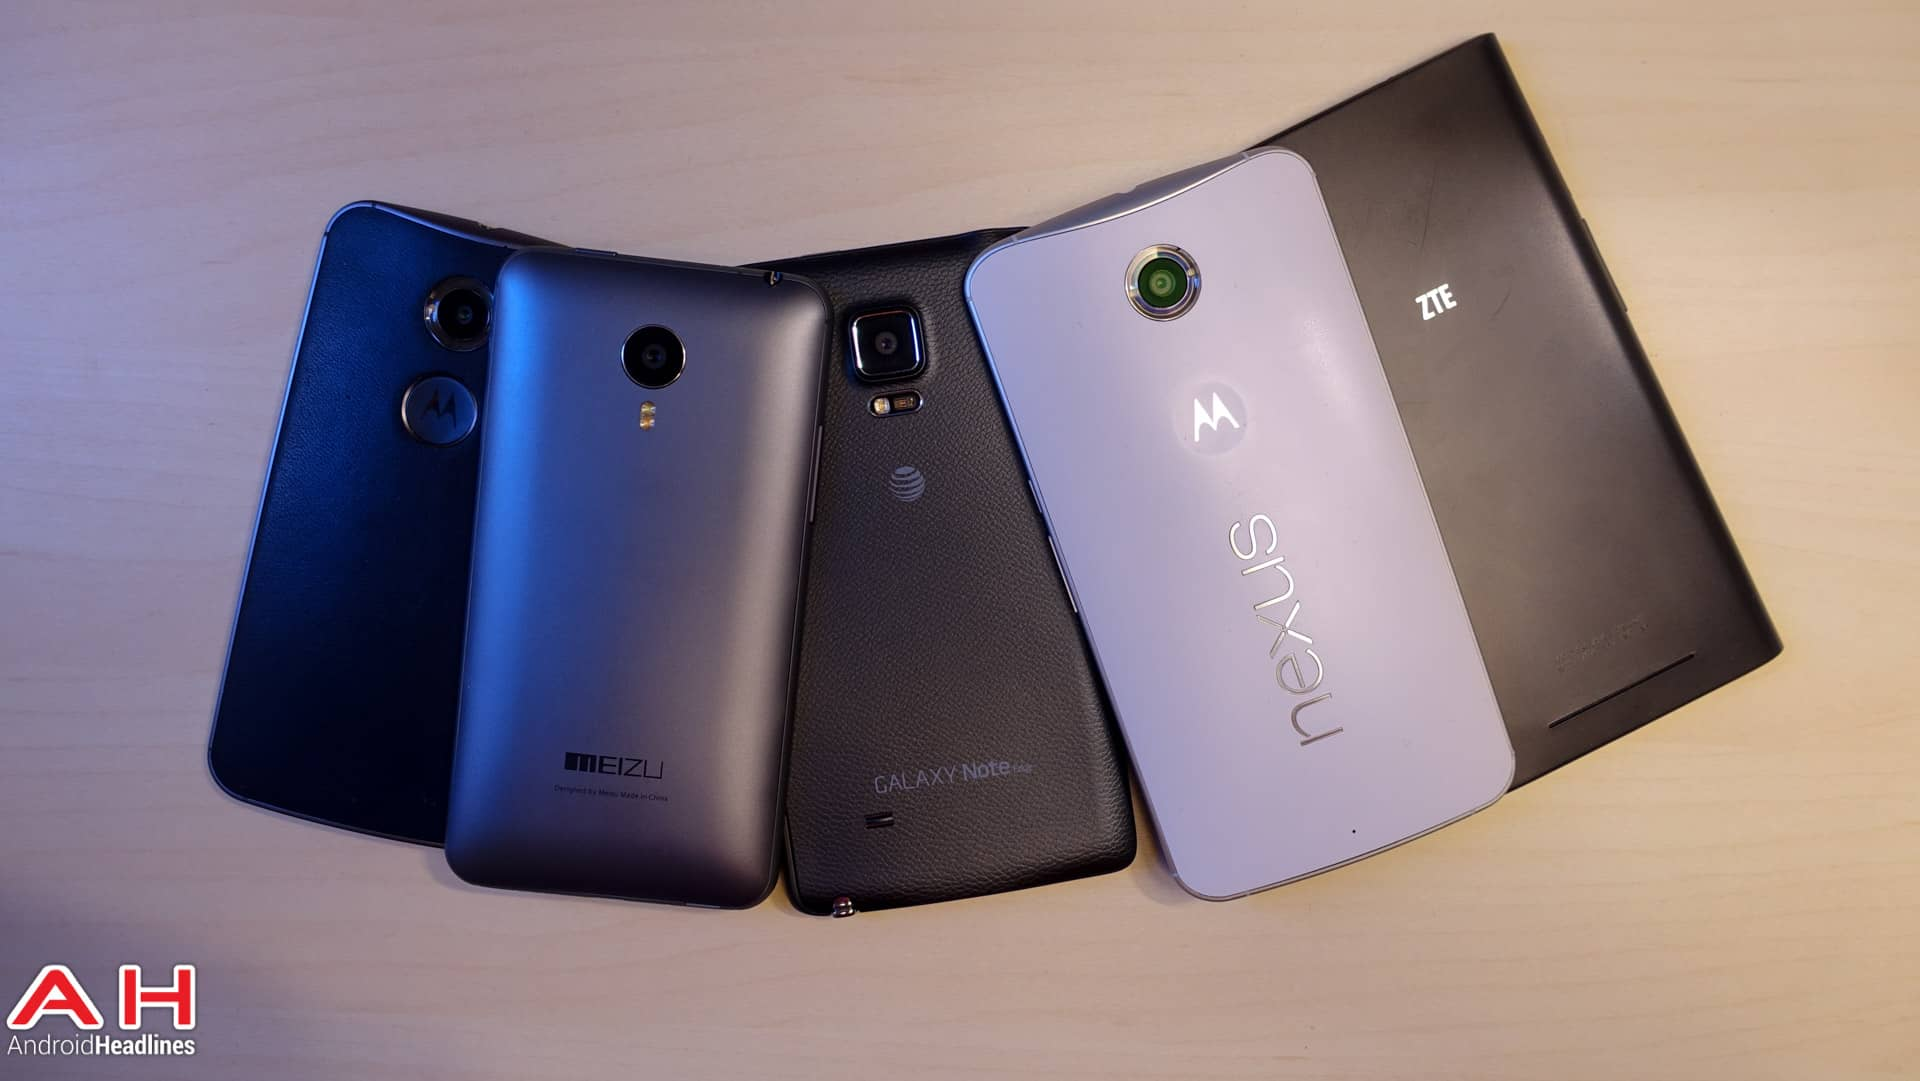 Top 10: Alternatives To The ASUS ZenFone 3